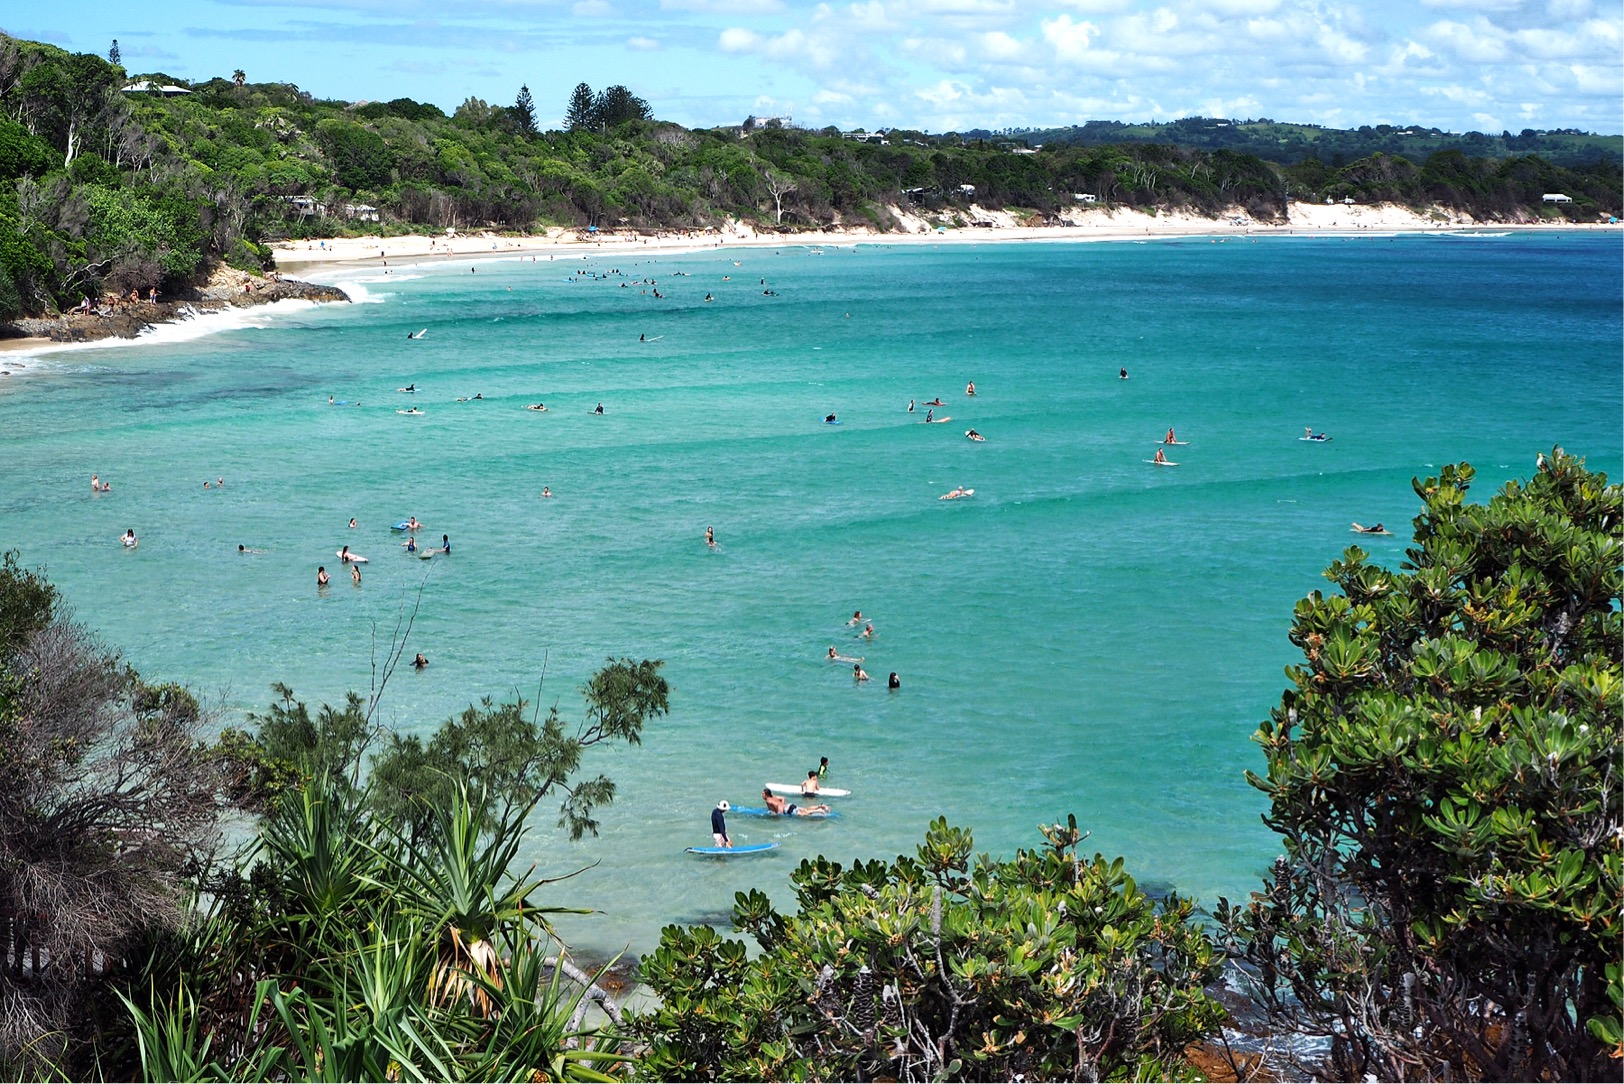 The Curious Report: Guide to Byron Bay – The Curious Report